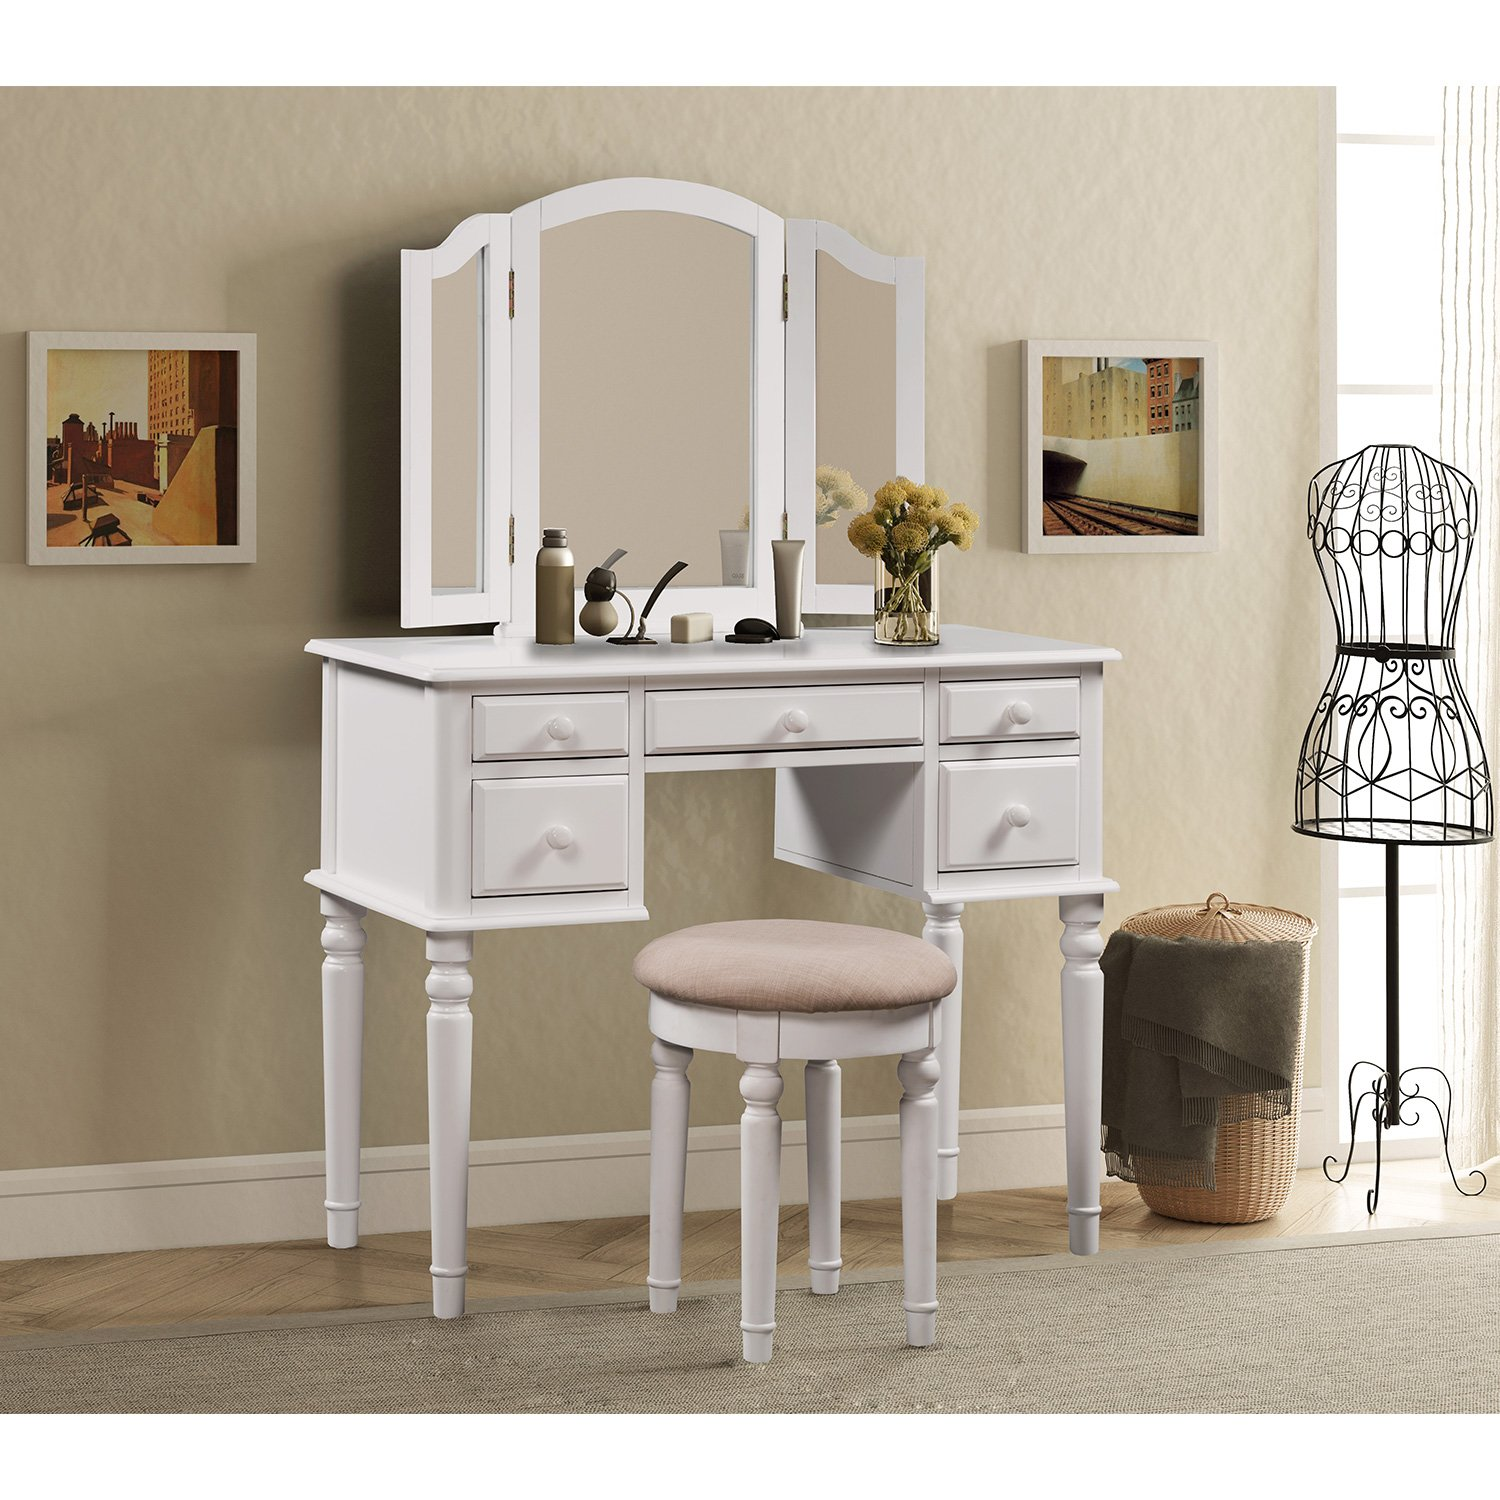 Merax Vanity Set w/Stool Make-up Dressing Table Bedroom Dressing Table (White)